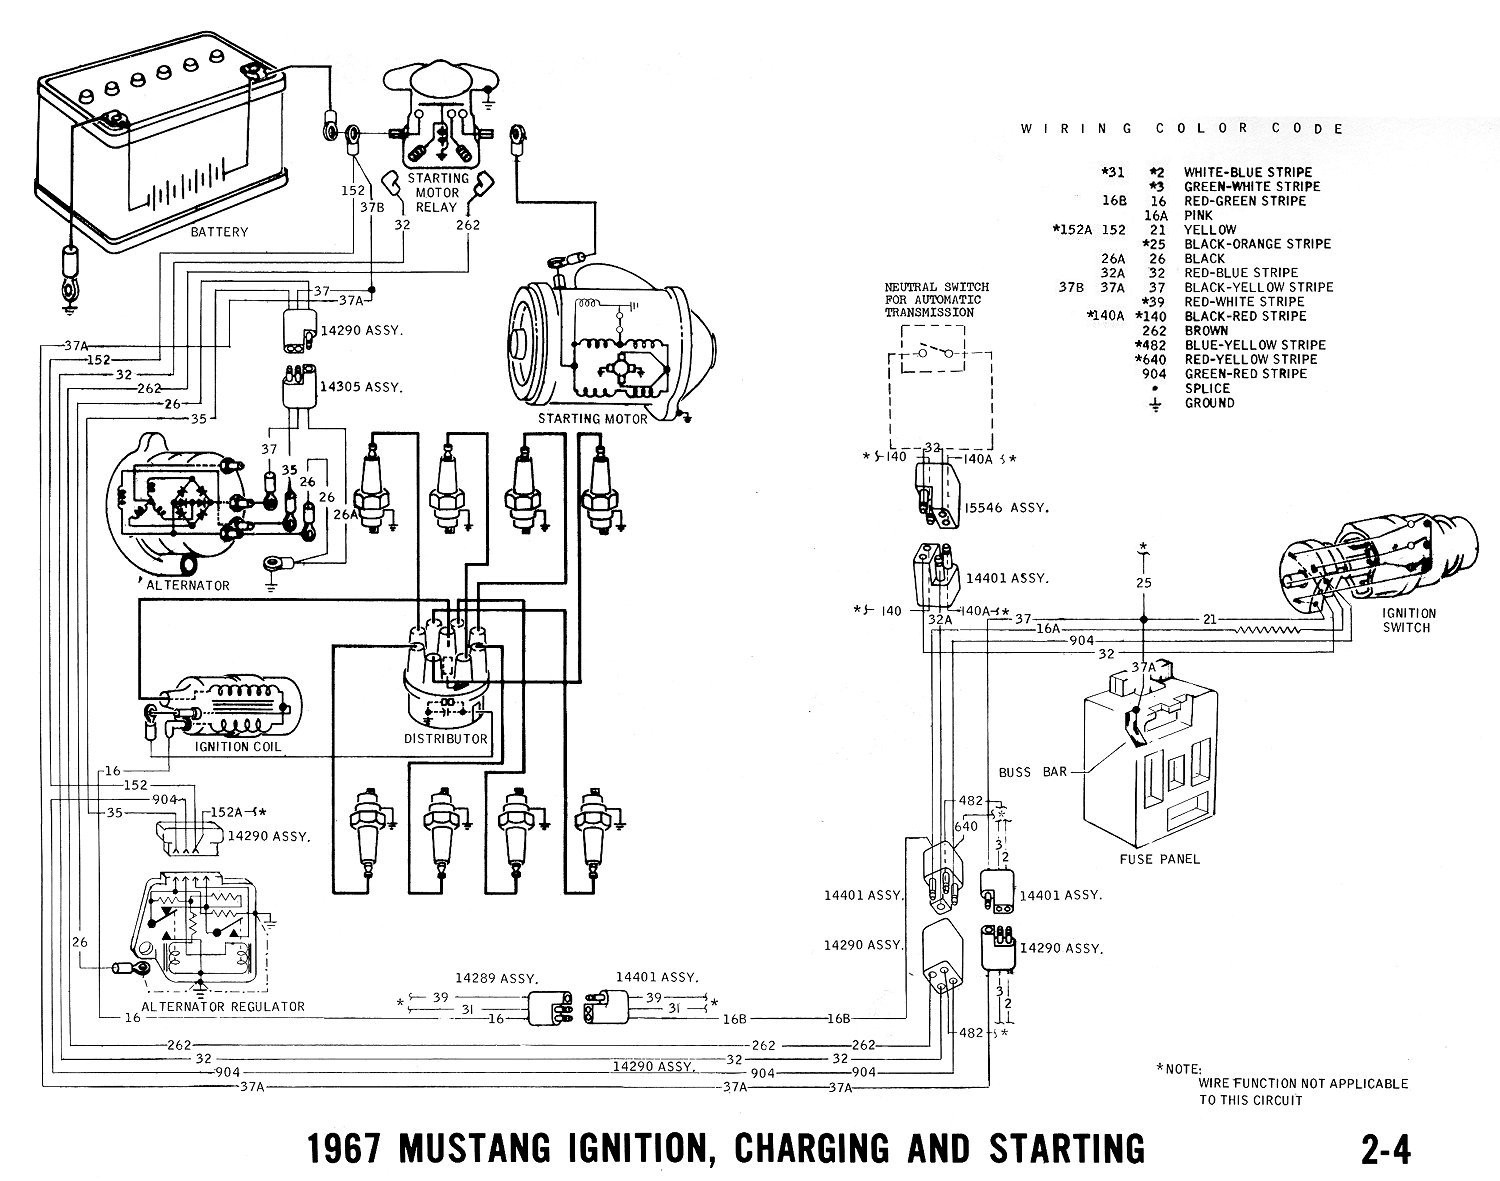 1967 Mustang Ignition  Starting And Charging Diagram